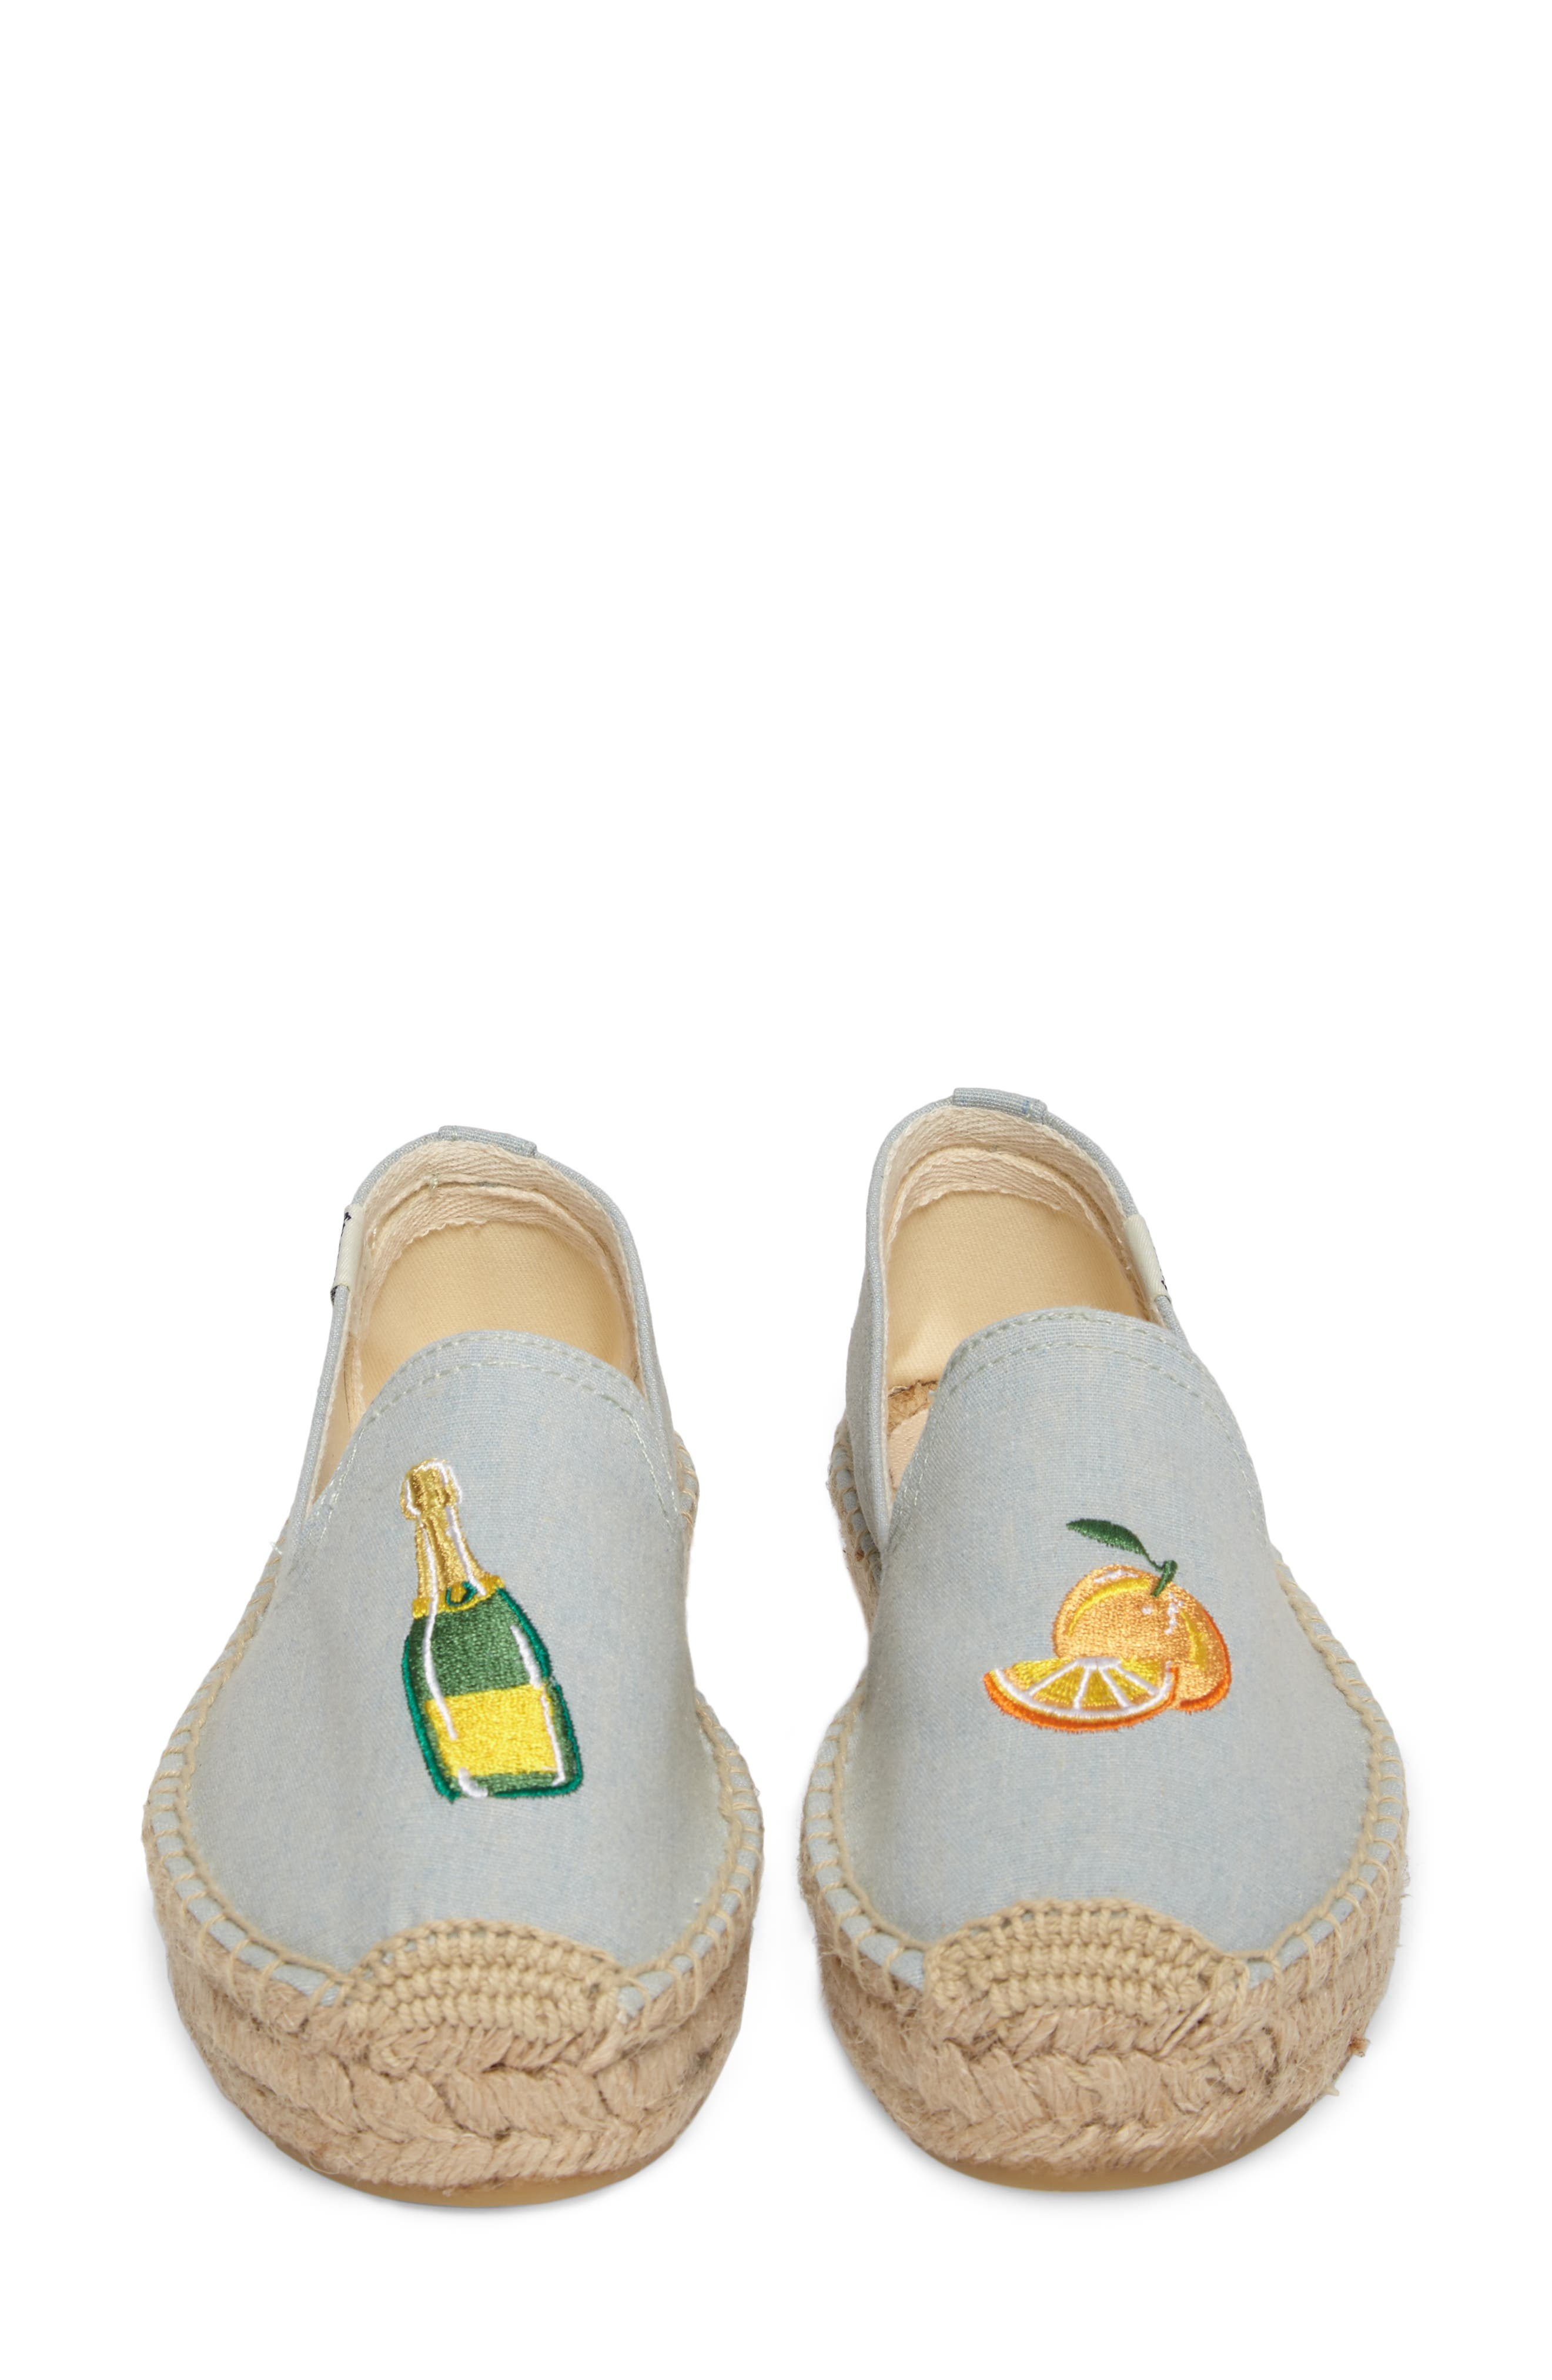 SOLUDOS,                             Mimosa Embroidered Platform Espadrille,                             Alternate thumbnail 4, color,                             420